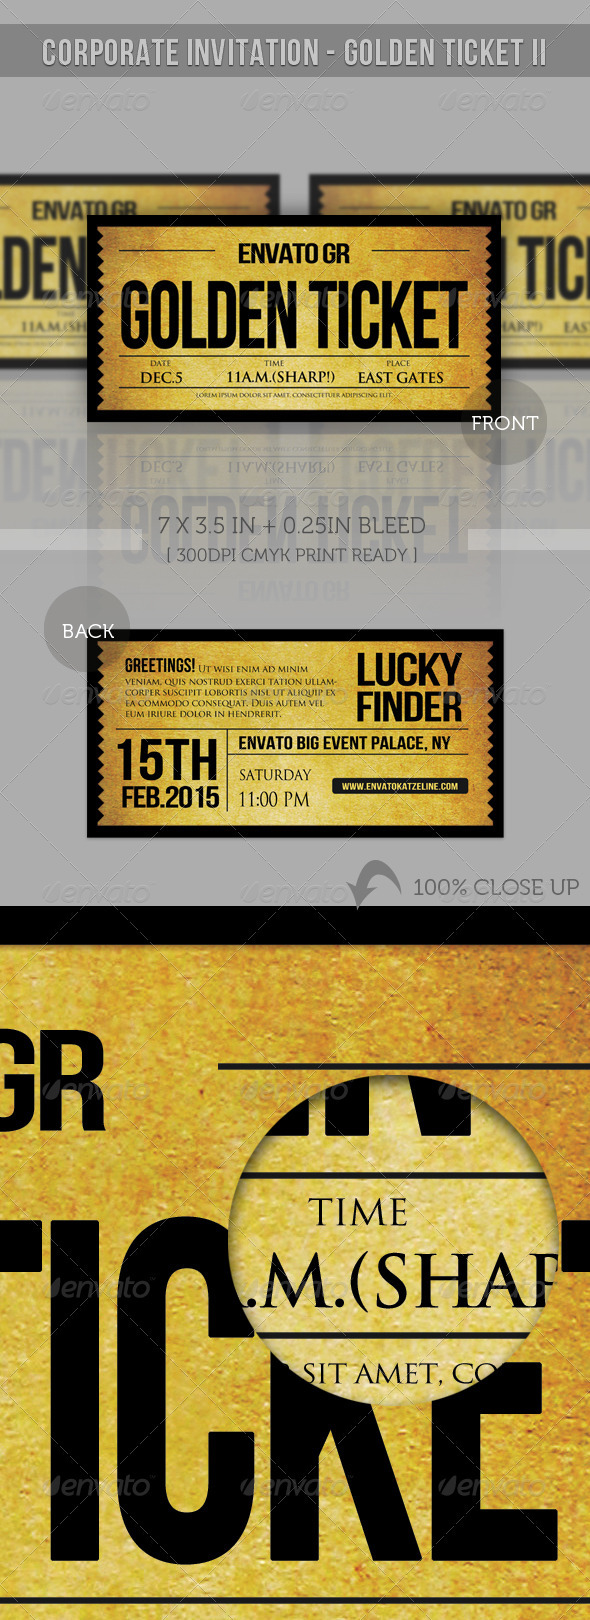 GraphicRiver Corporate Invitation Golden Ticket II 2081066